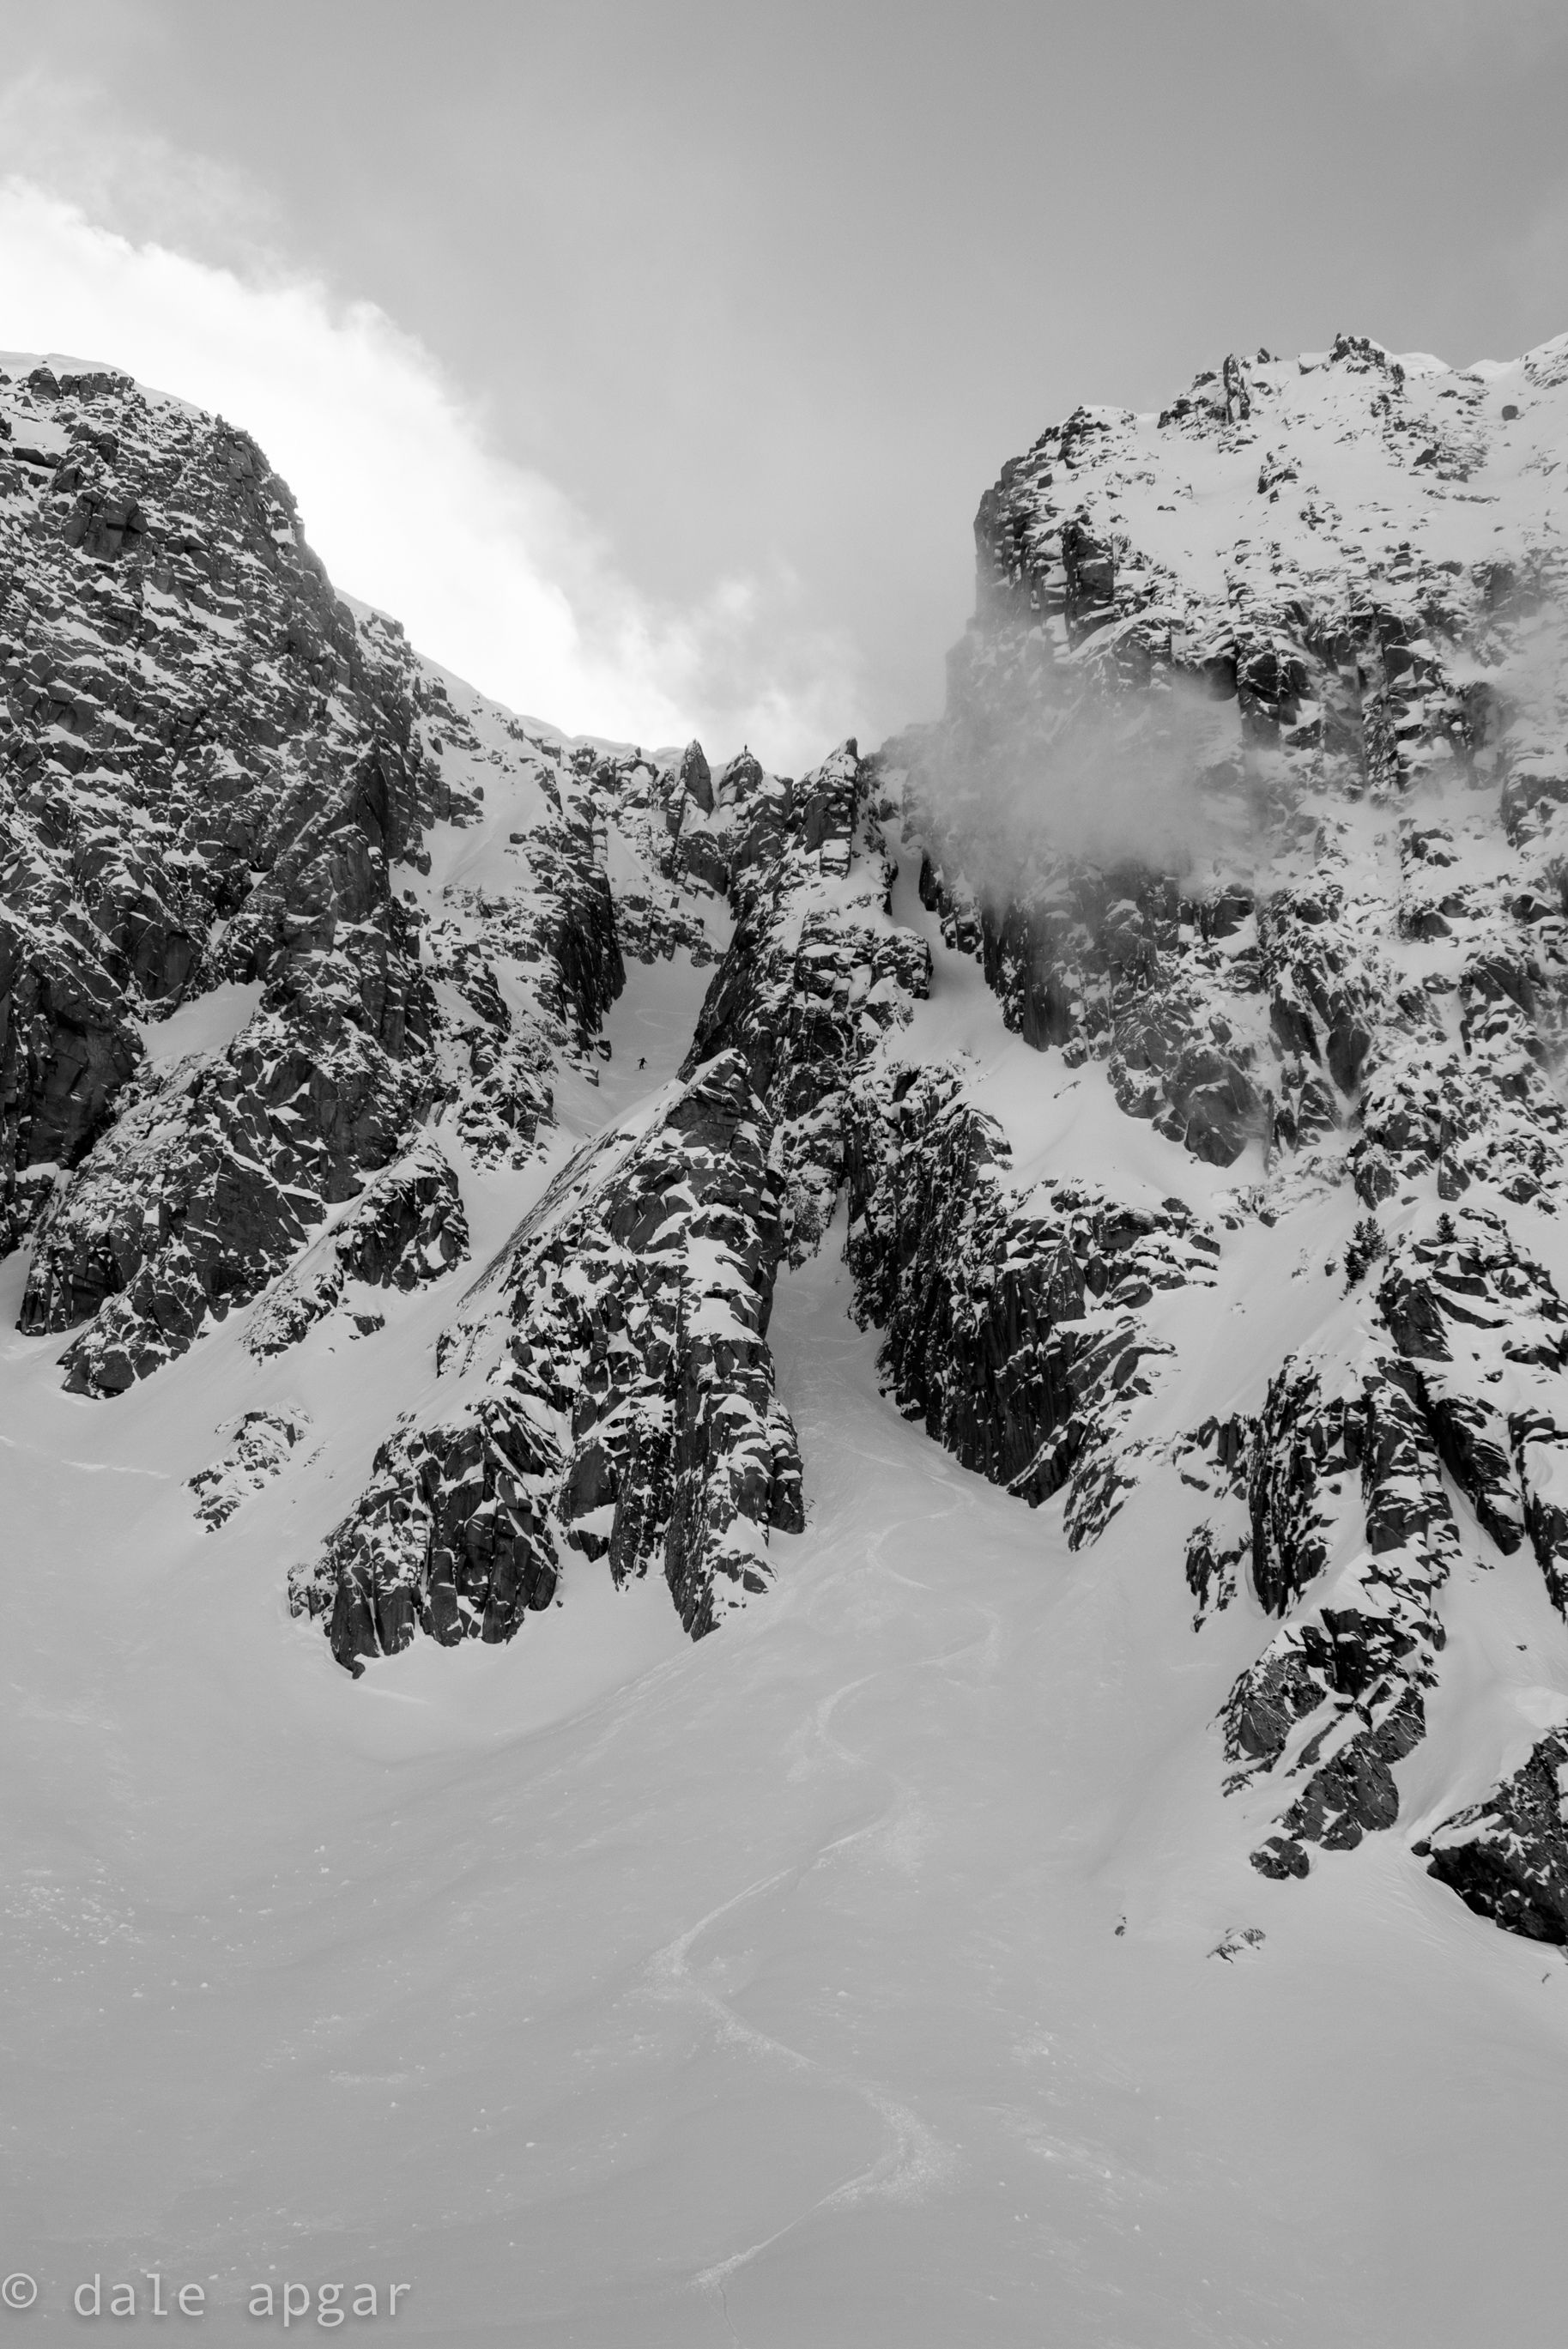 Ripper chute in all time conditions. Bonus points for spotting both humans in the capture